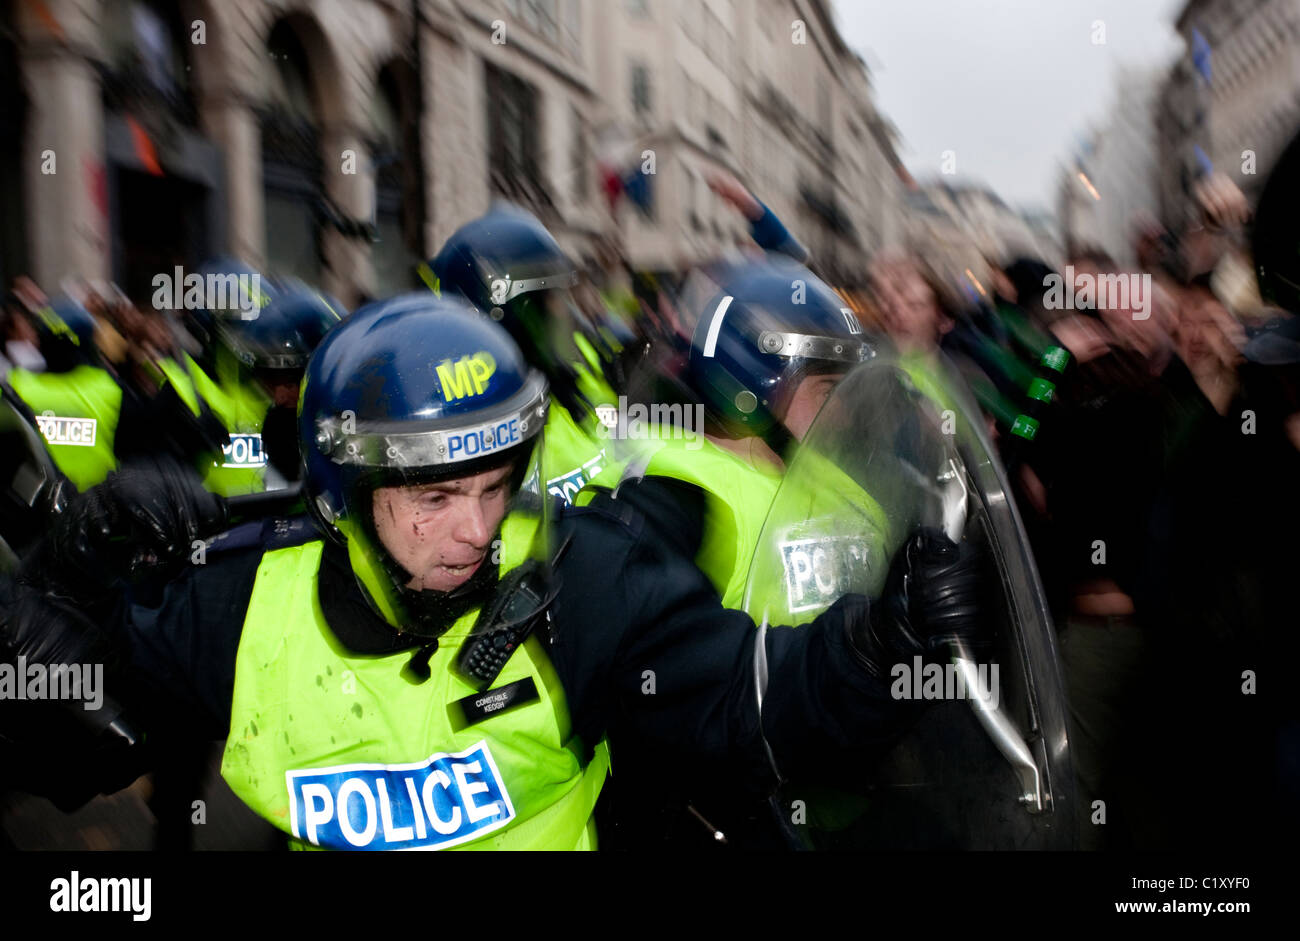 Anti-Cuts march 26/03/2011, London, UK Riot Police clash with demonstrators on Piccadilly during violent protests. - Stock Image